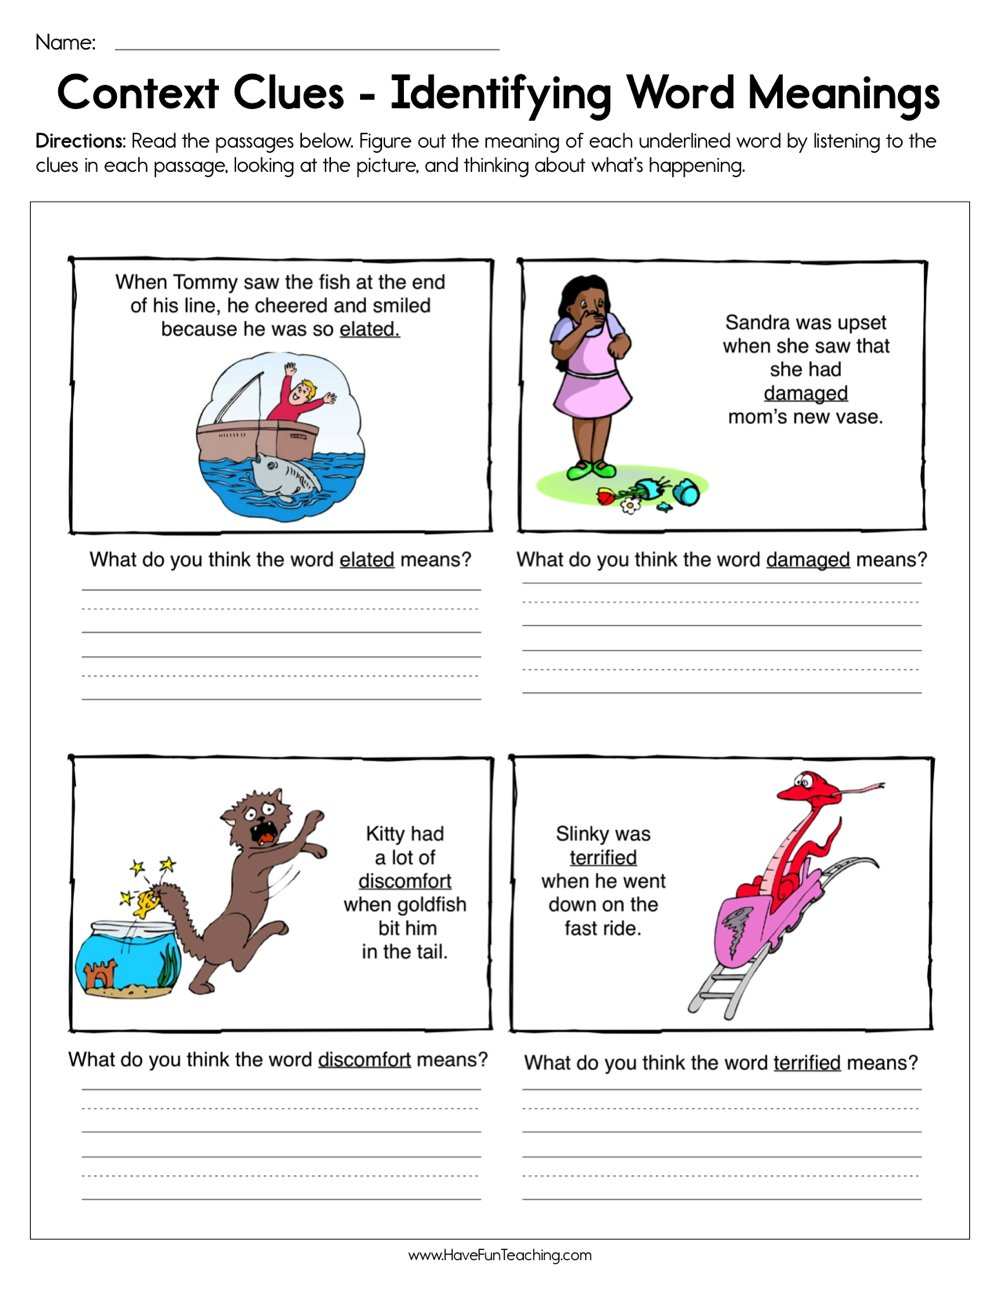 Context Clues Identifying Word Meaning Worksheet